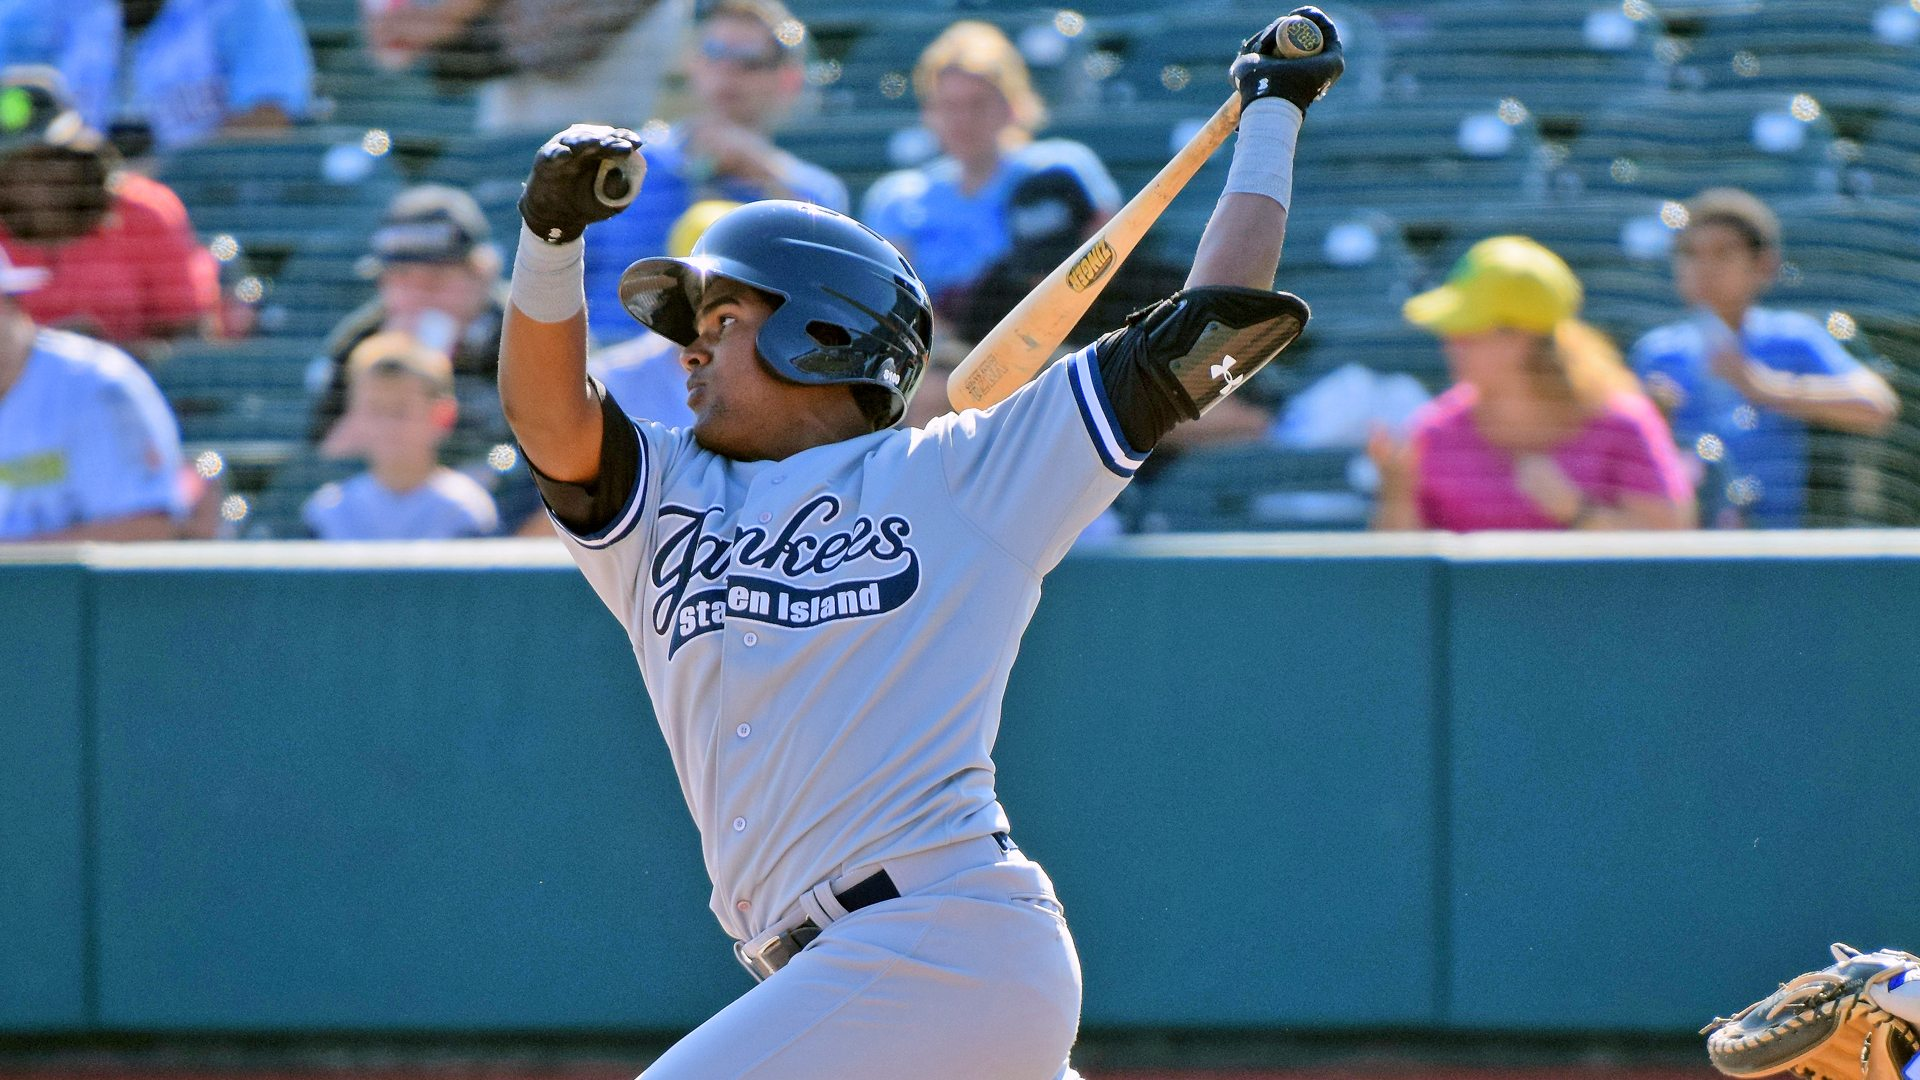 Welfrin Mateo was 2-for-5 with 3 RBI's in his first game for the Staten Island Yankees. (Robert M. Pimpsner)